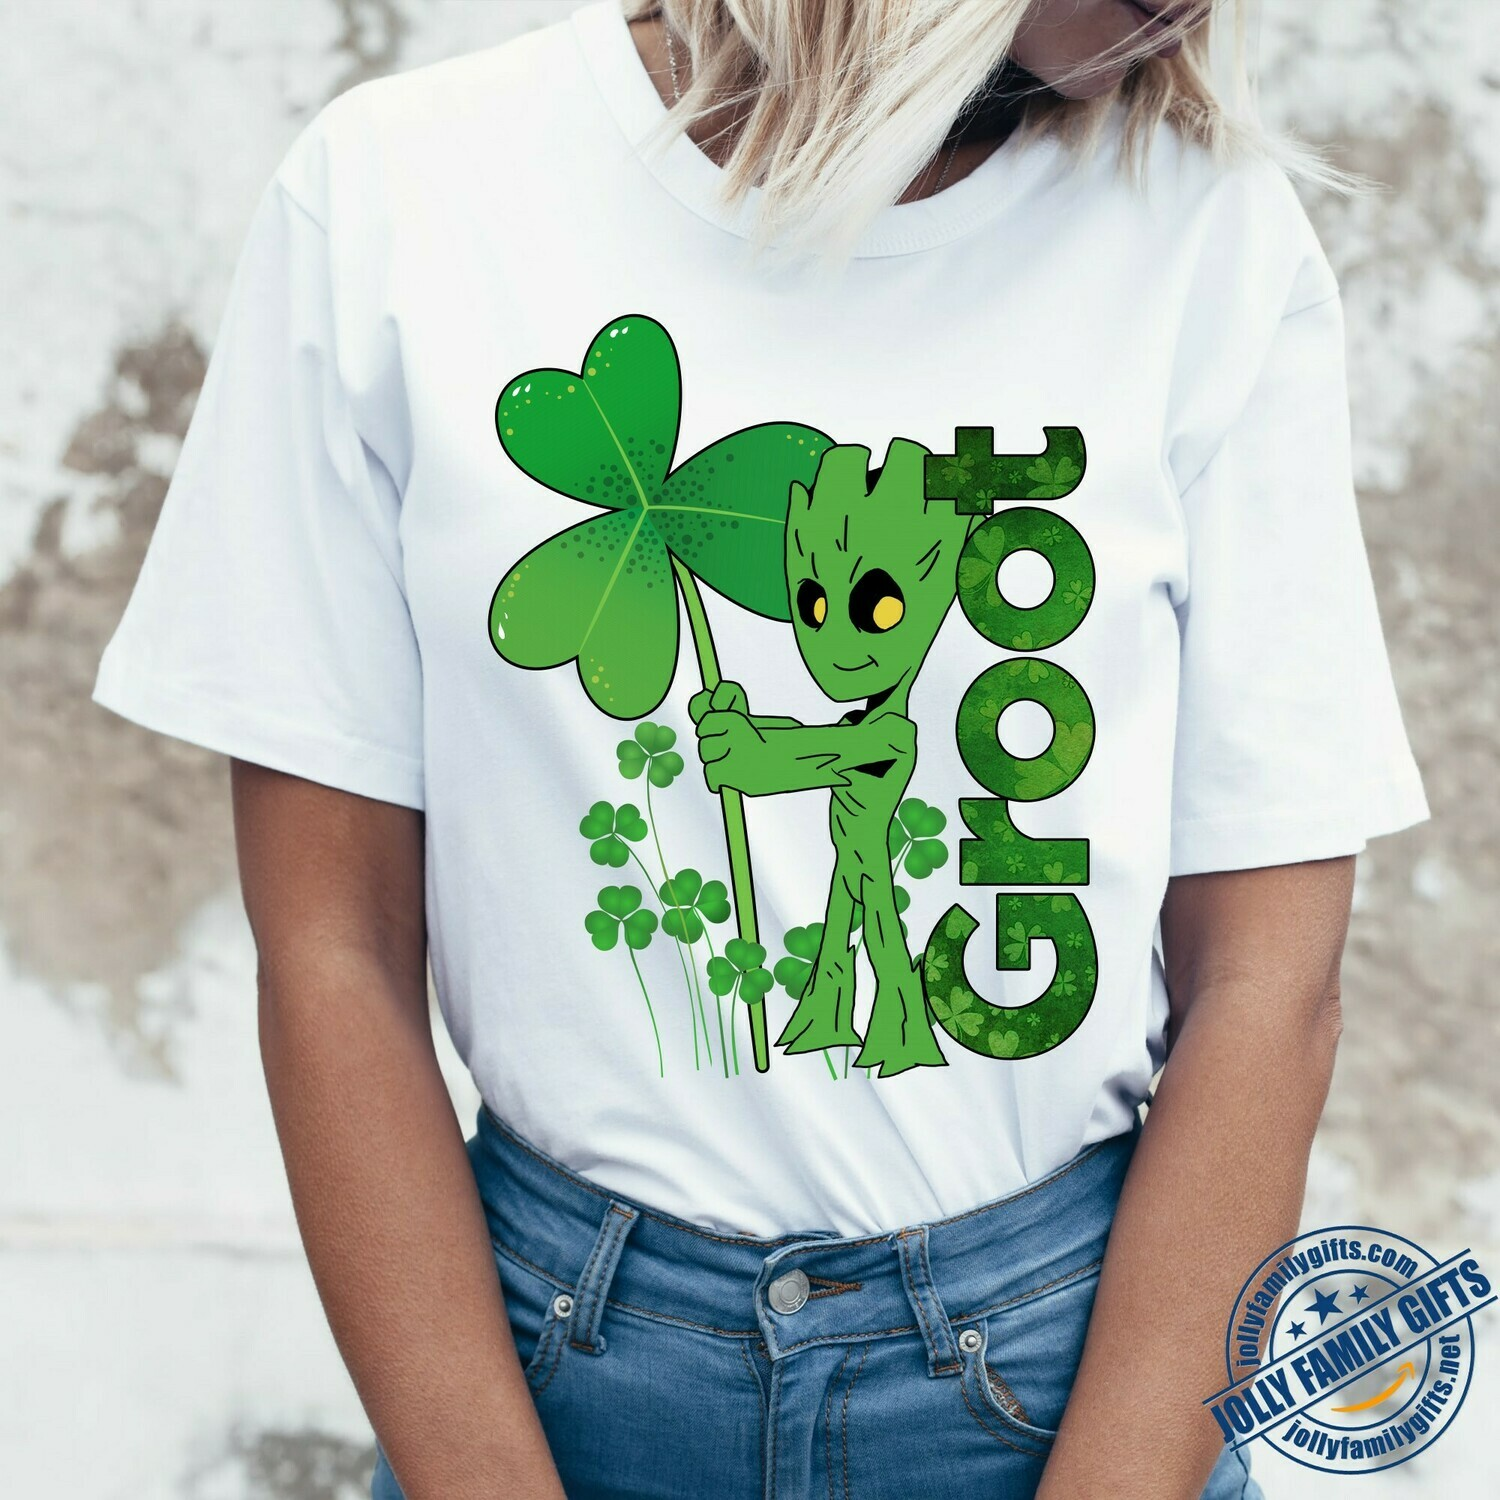 Happy St Patrick's Day Baby Groot hugs Green Shamrock Guardians of the Galaxy movie  Unisex T-Shirt Hoodie Sweatshirt Sweater Plus Size for Ladies Women Men Kids Youth Gifts Tee Jolly Family Gifts